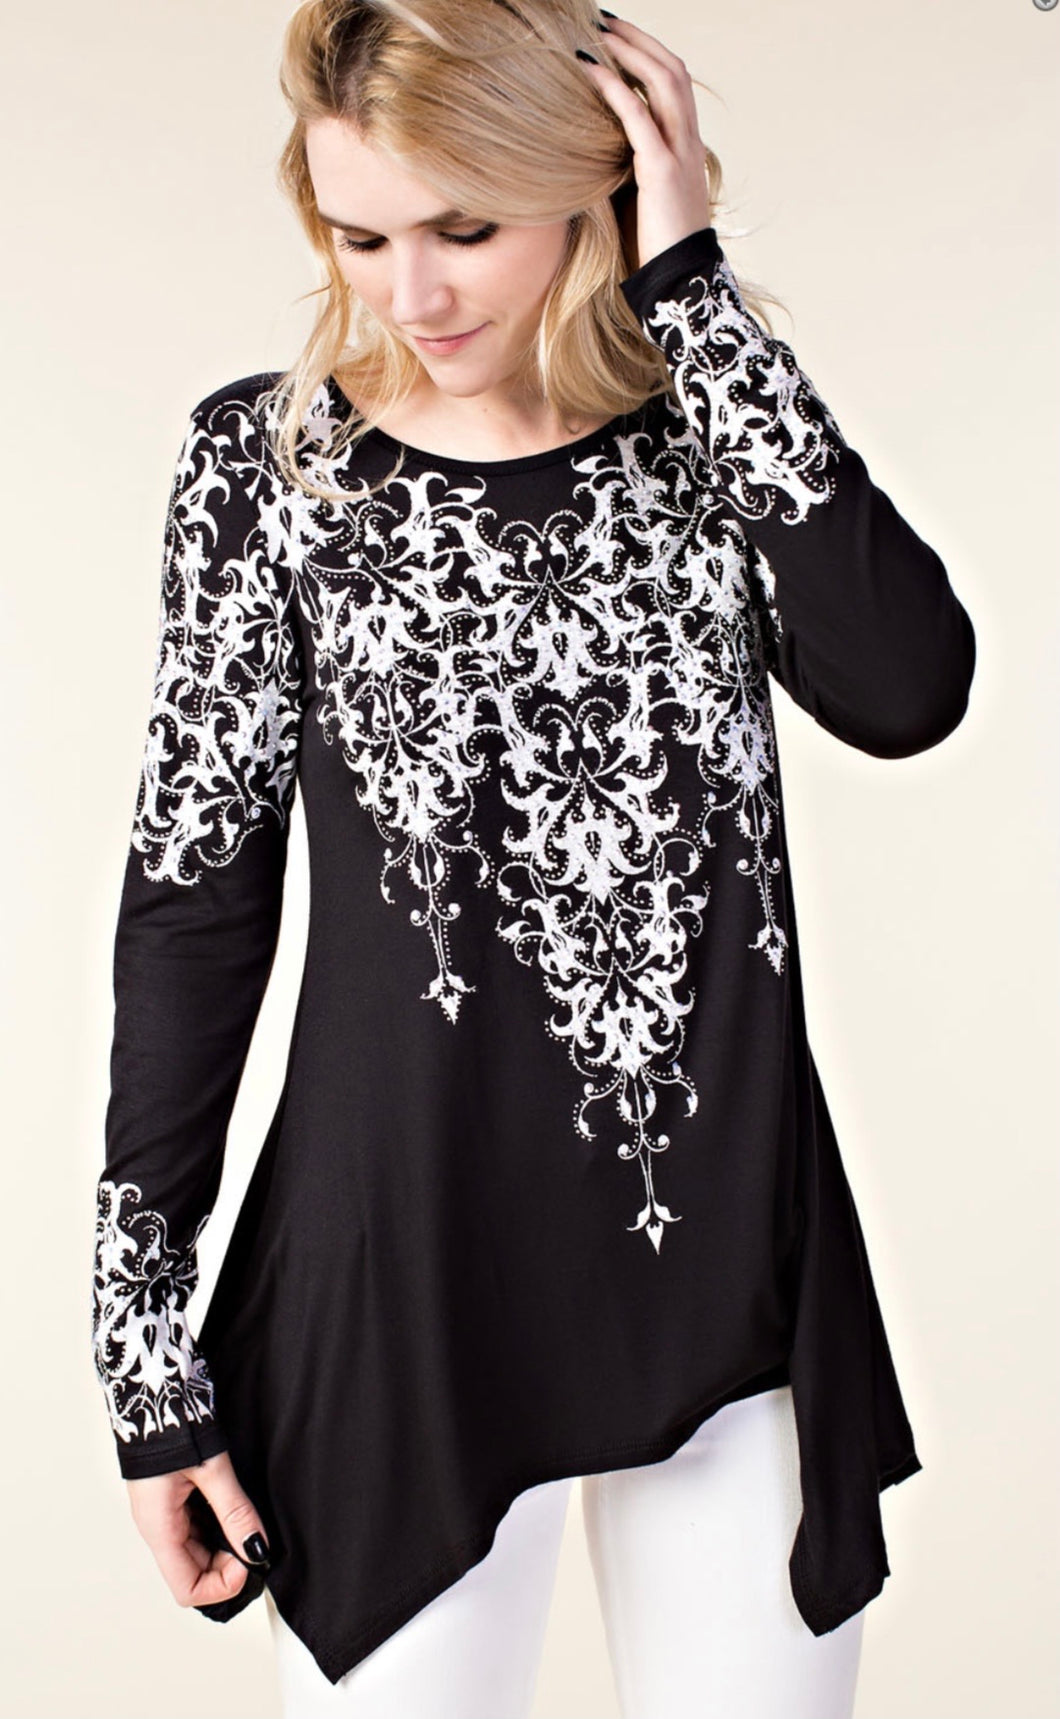 Long Sleeve Black T-Shirt with White Design & Stones